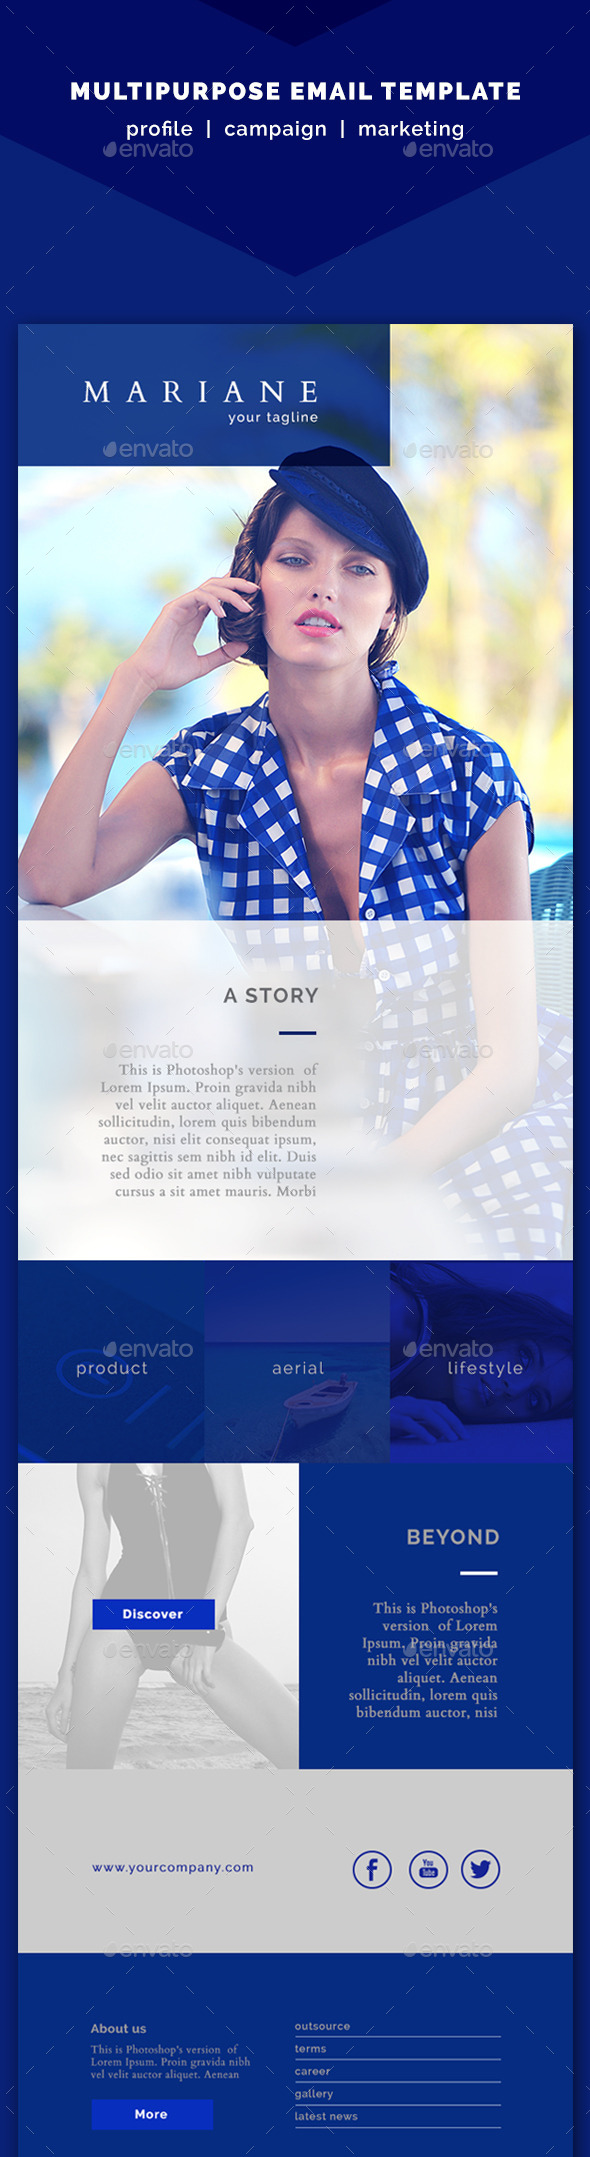 Mariane Multipurpose Template